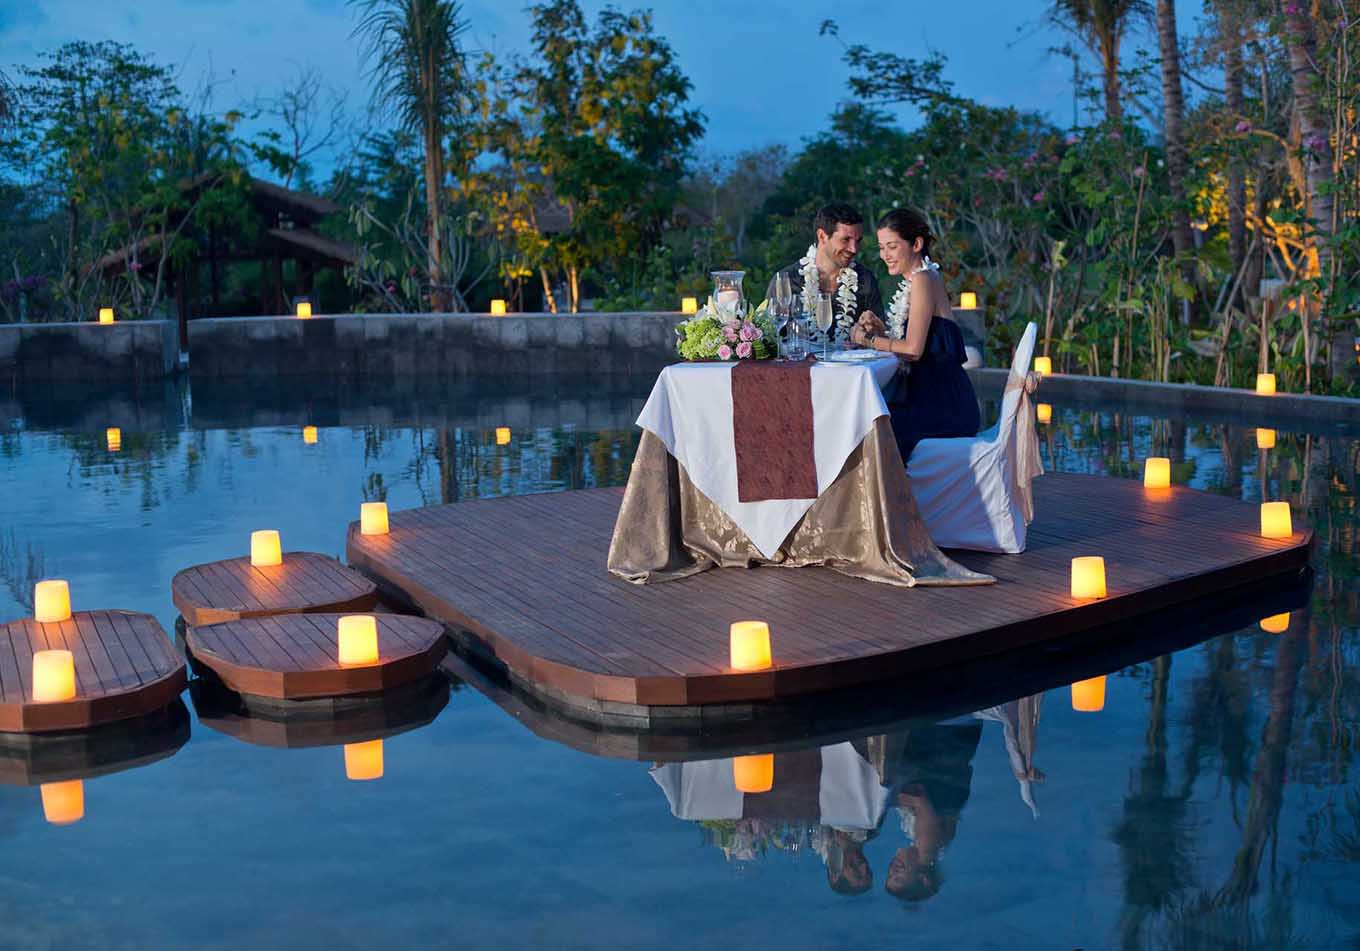 Bali Honeymoon Tour Packages Book Honeymoon Holidays In Bali